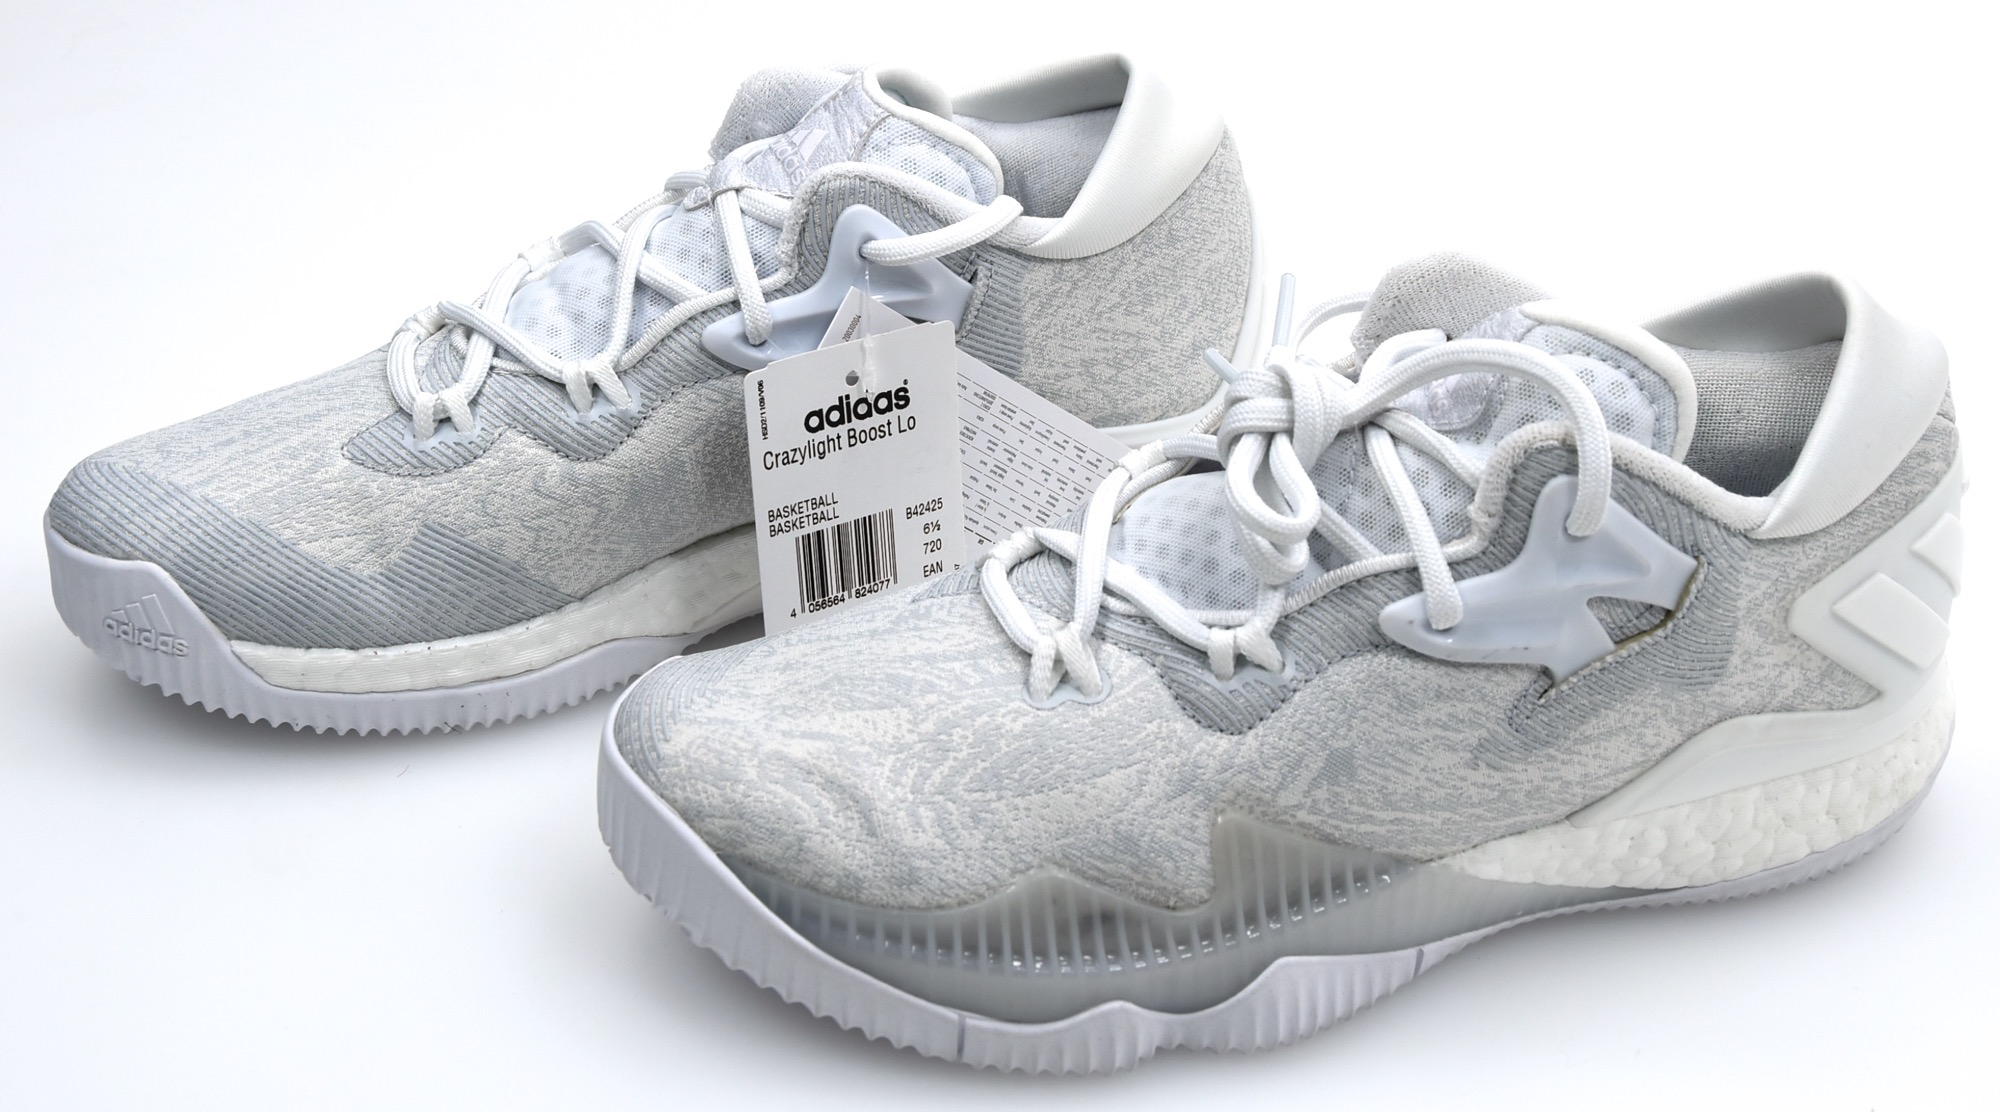 separation shoes 28a21 e507b ADIDAS MAN BASKETBALL SPORTS SNEAKER SHOES CODE CRAZYLIGHT BOOST LOW 2016